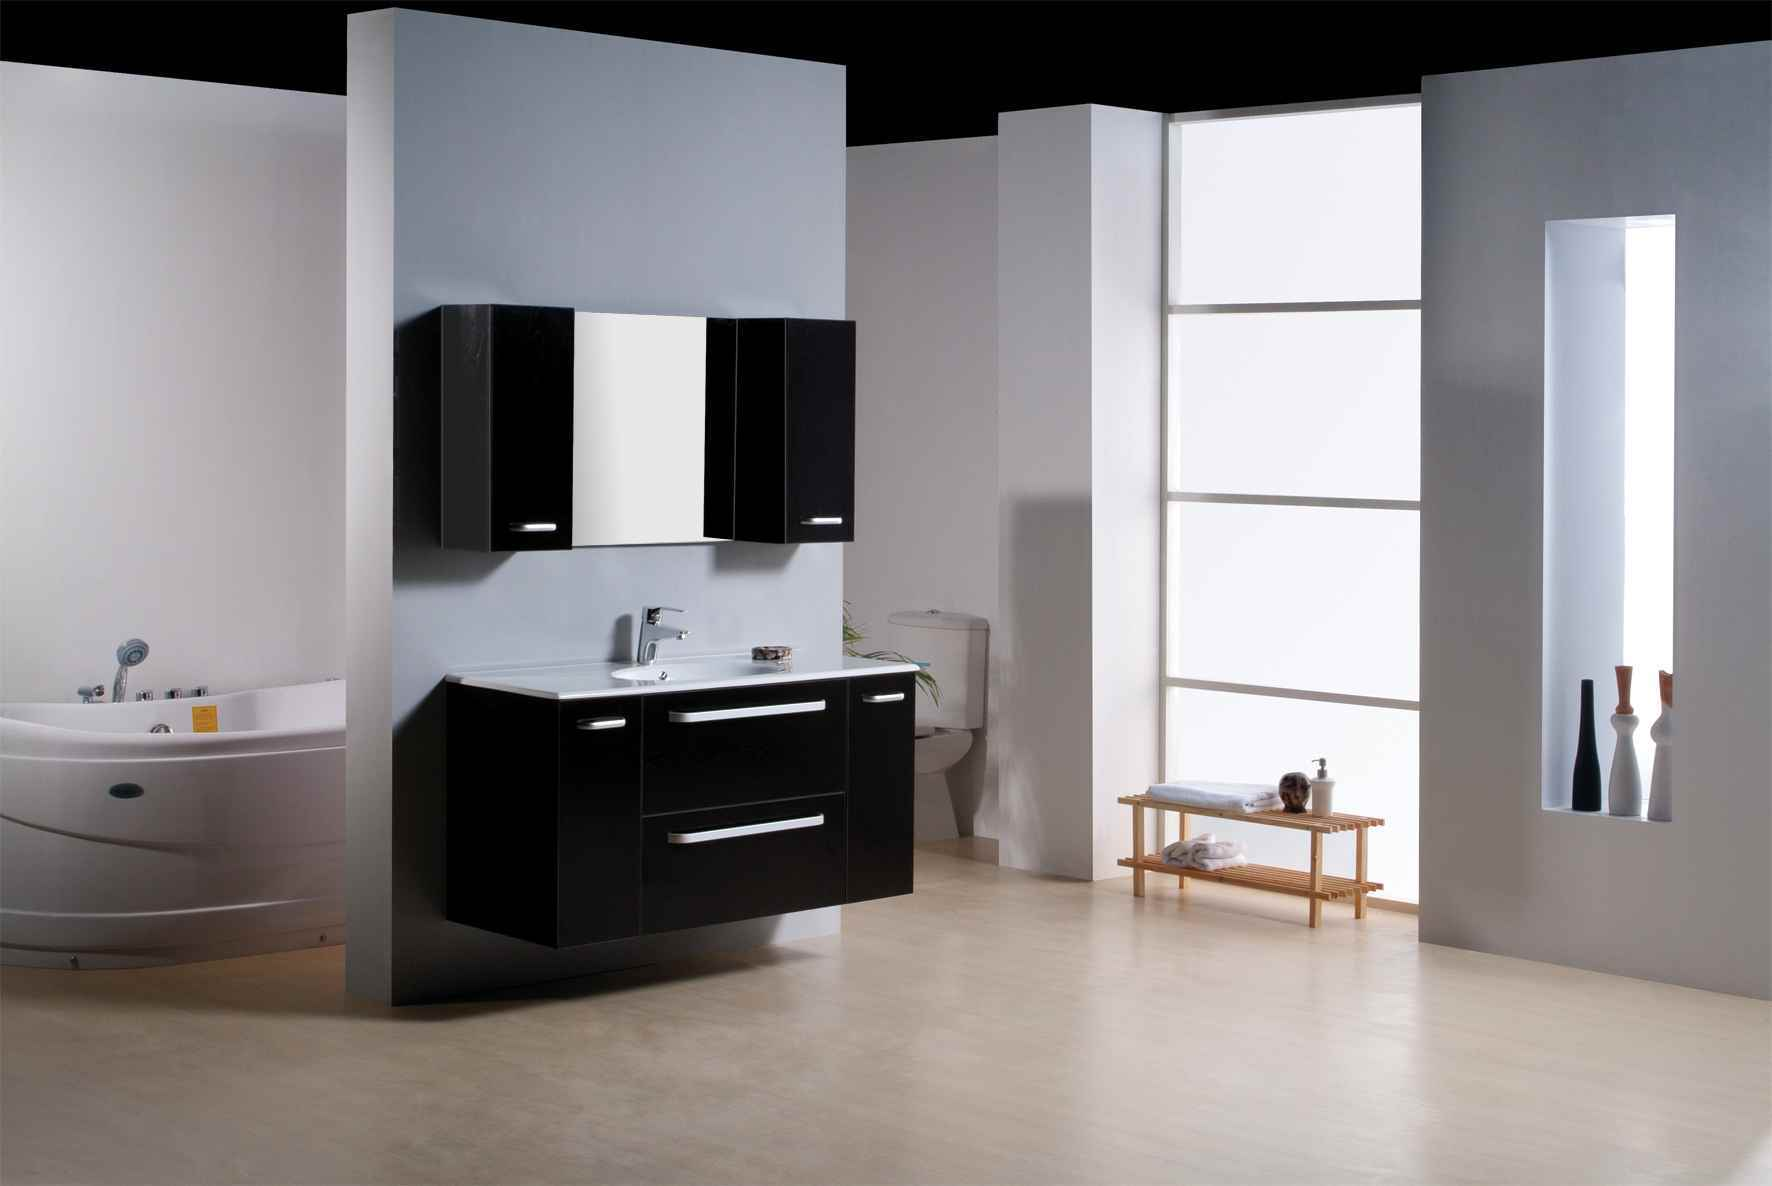 China new design bathroom cabinet china bathroom cabinet sanitary ware - Designs for bathroom cabinets ...